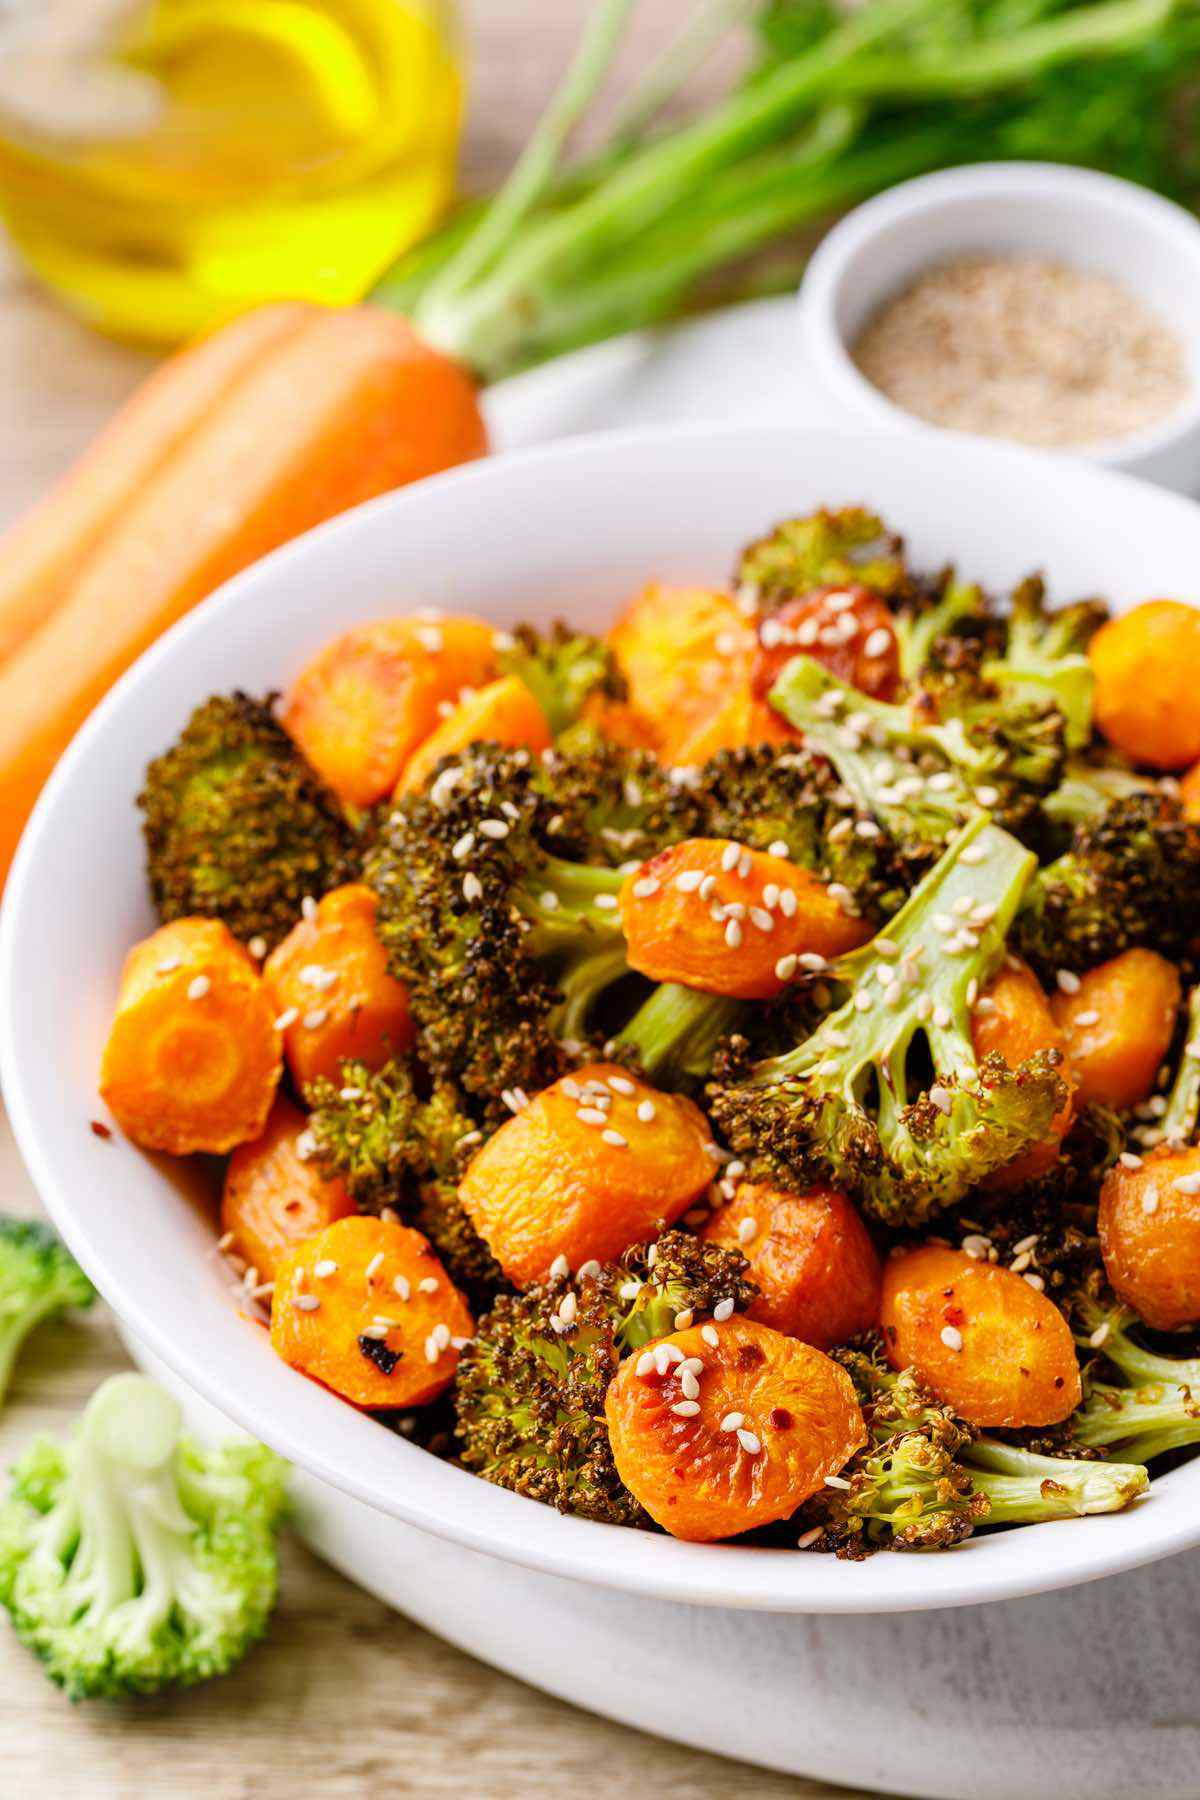 Garlic Roasted Broccoli and Carrots